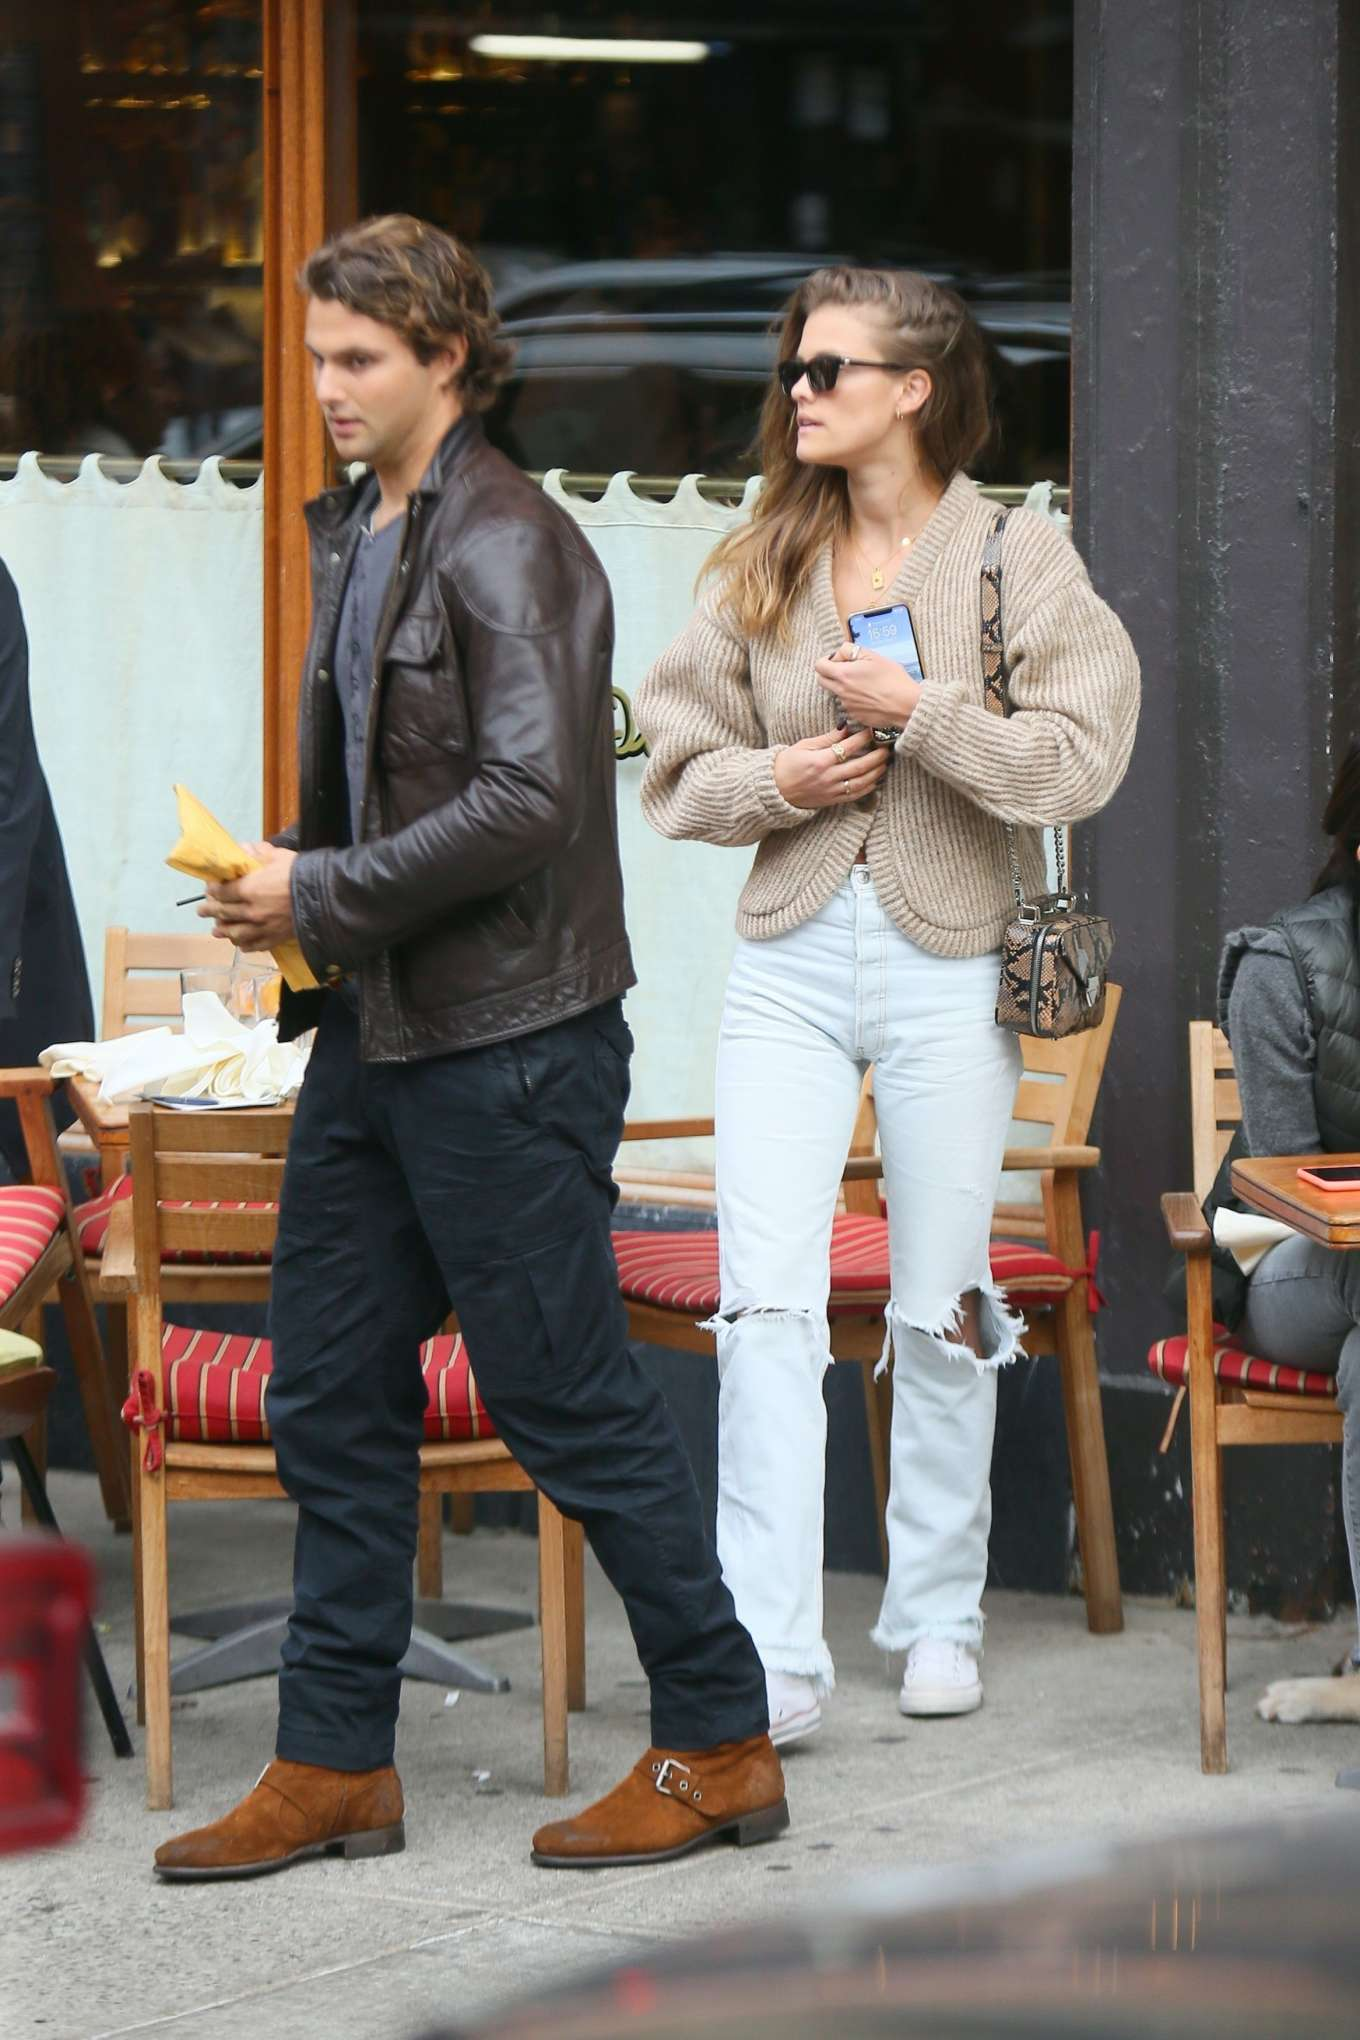 Nina Agdal with her boyfriend at Saint Ambrose in New York City